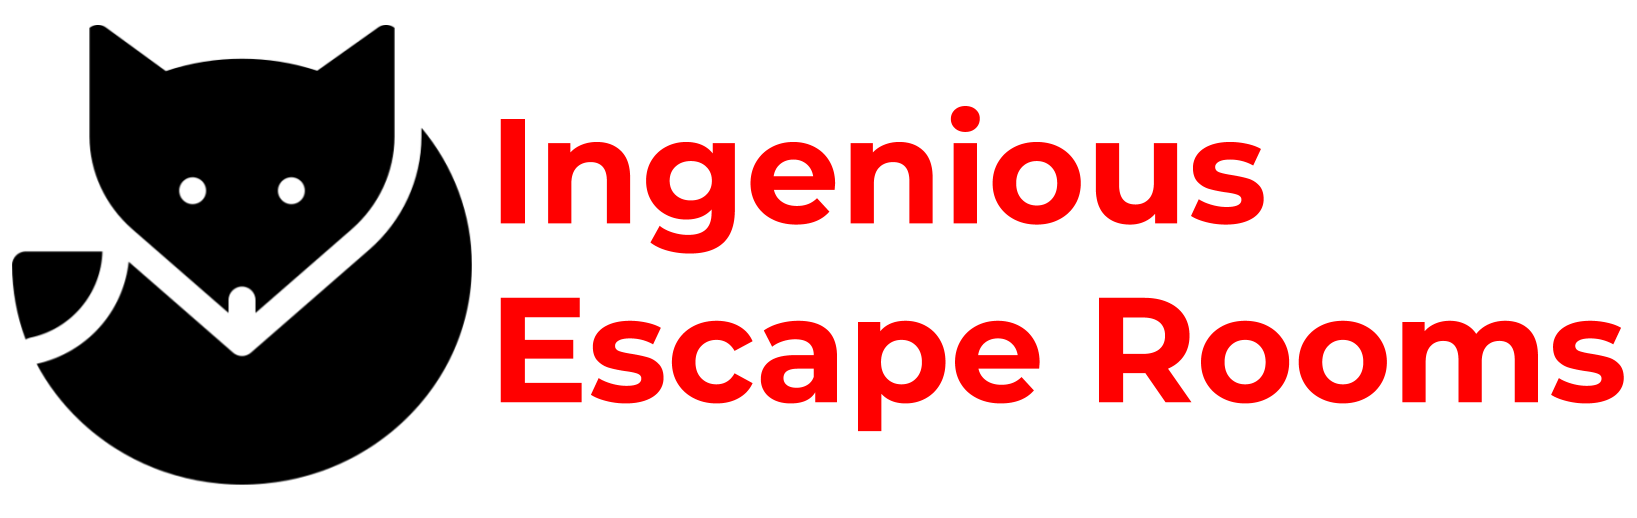 Ingenious Escape Rooms |   cropped-Untitled-drawing-2019-12-06T203623.104.jpg